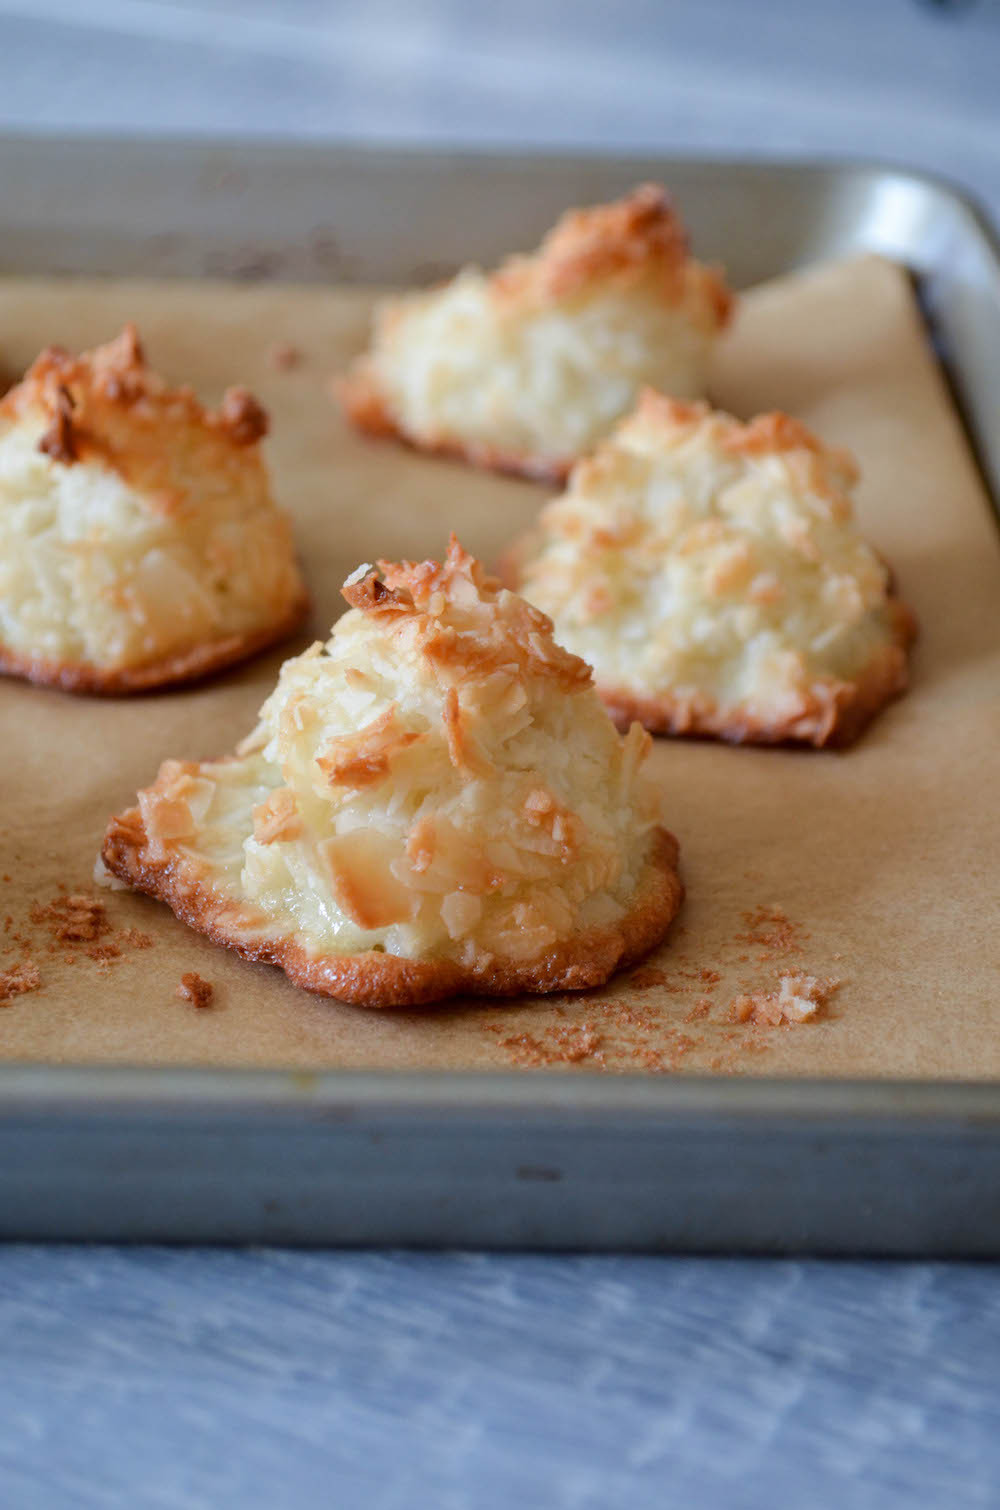 Passover Coconut Macaroons  Coconut Macaroons Passover Recipe